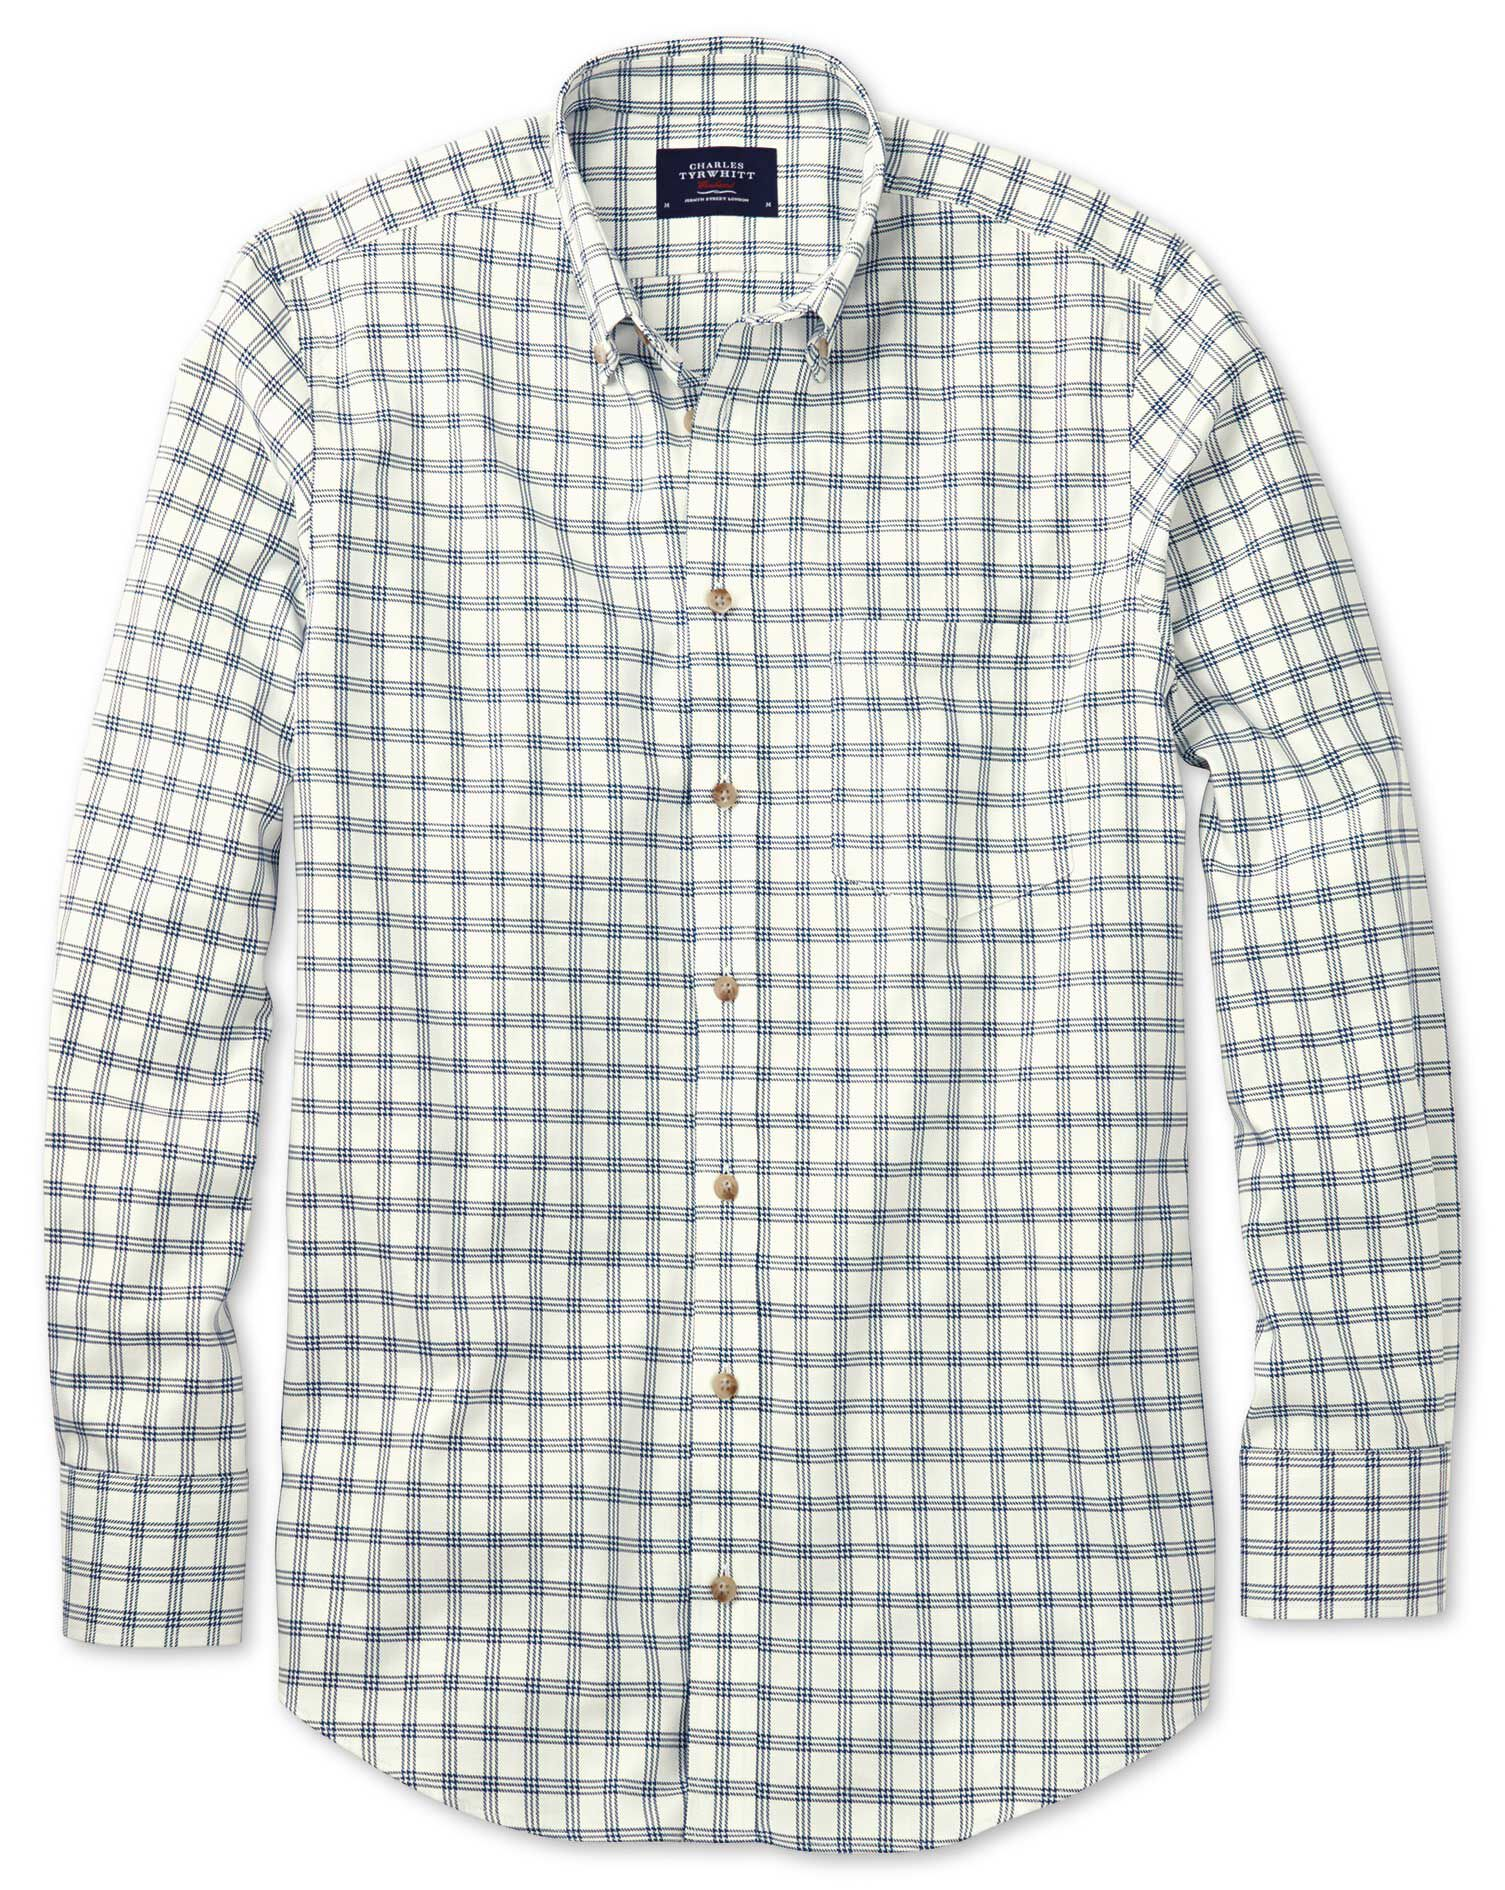 Slim Fit Non-Iron Windowpane Check White and Navy Cotton Shirt Single Cuff Size Large by Charles Tyr